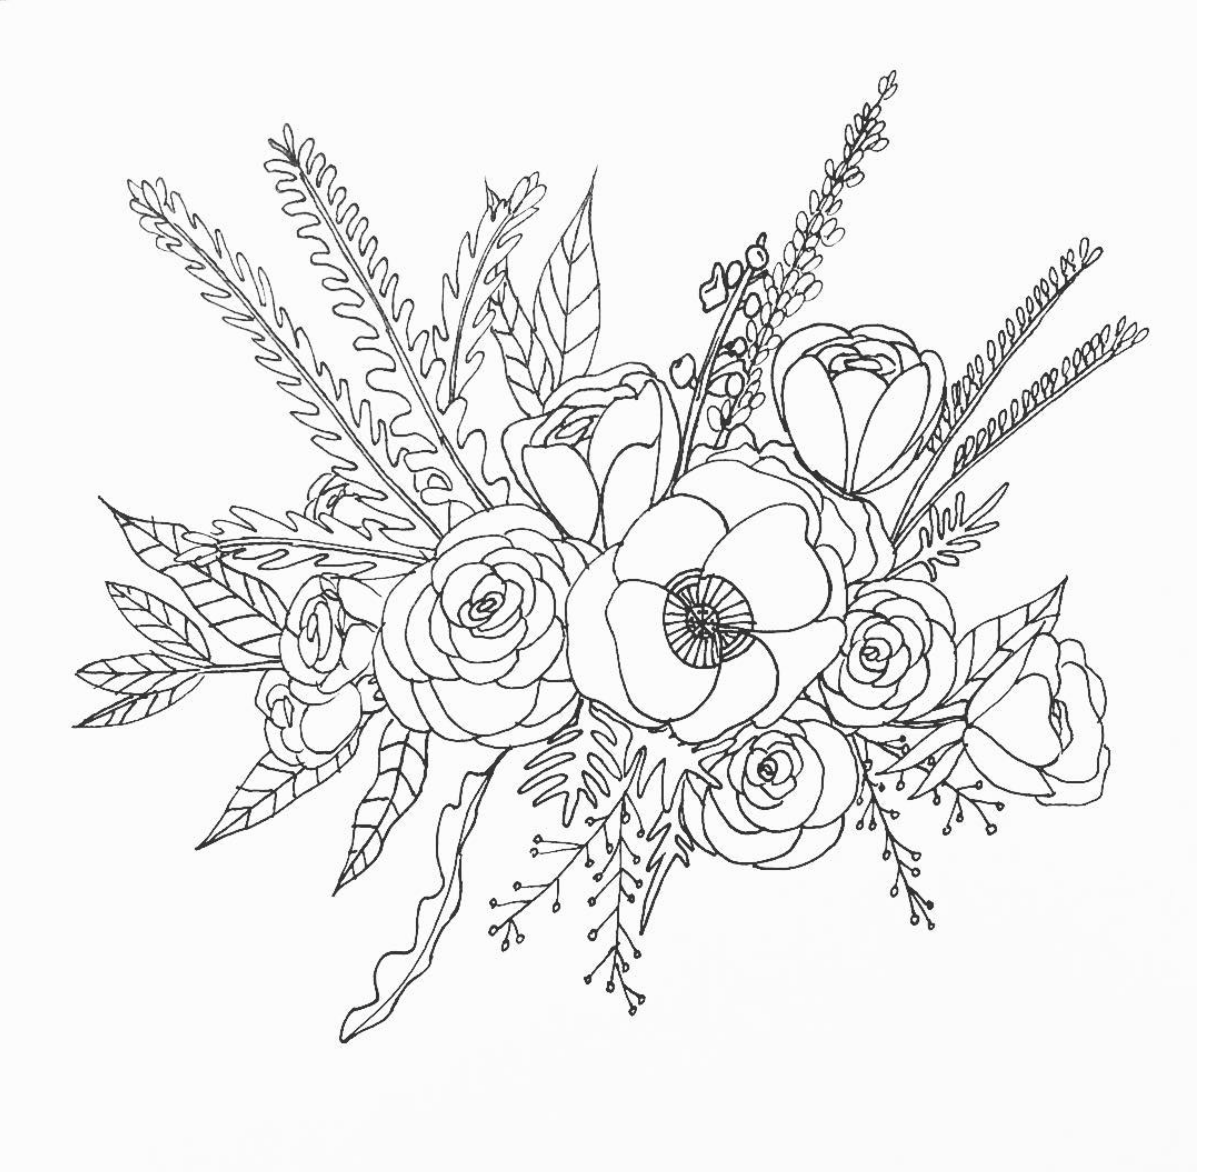 Line Art Aplic Flower Design : Line drawing flower illustration floral bouquet art